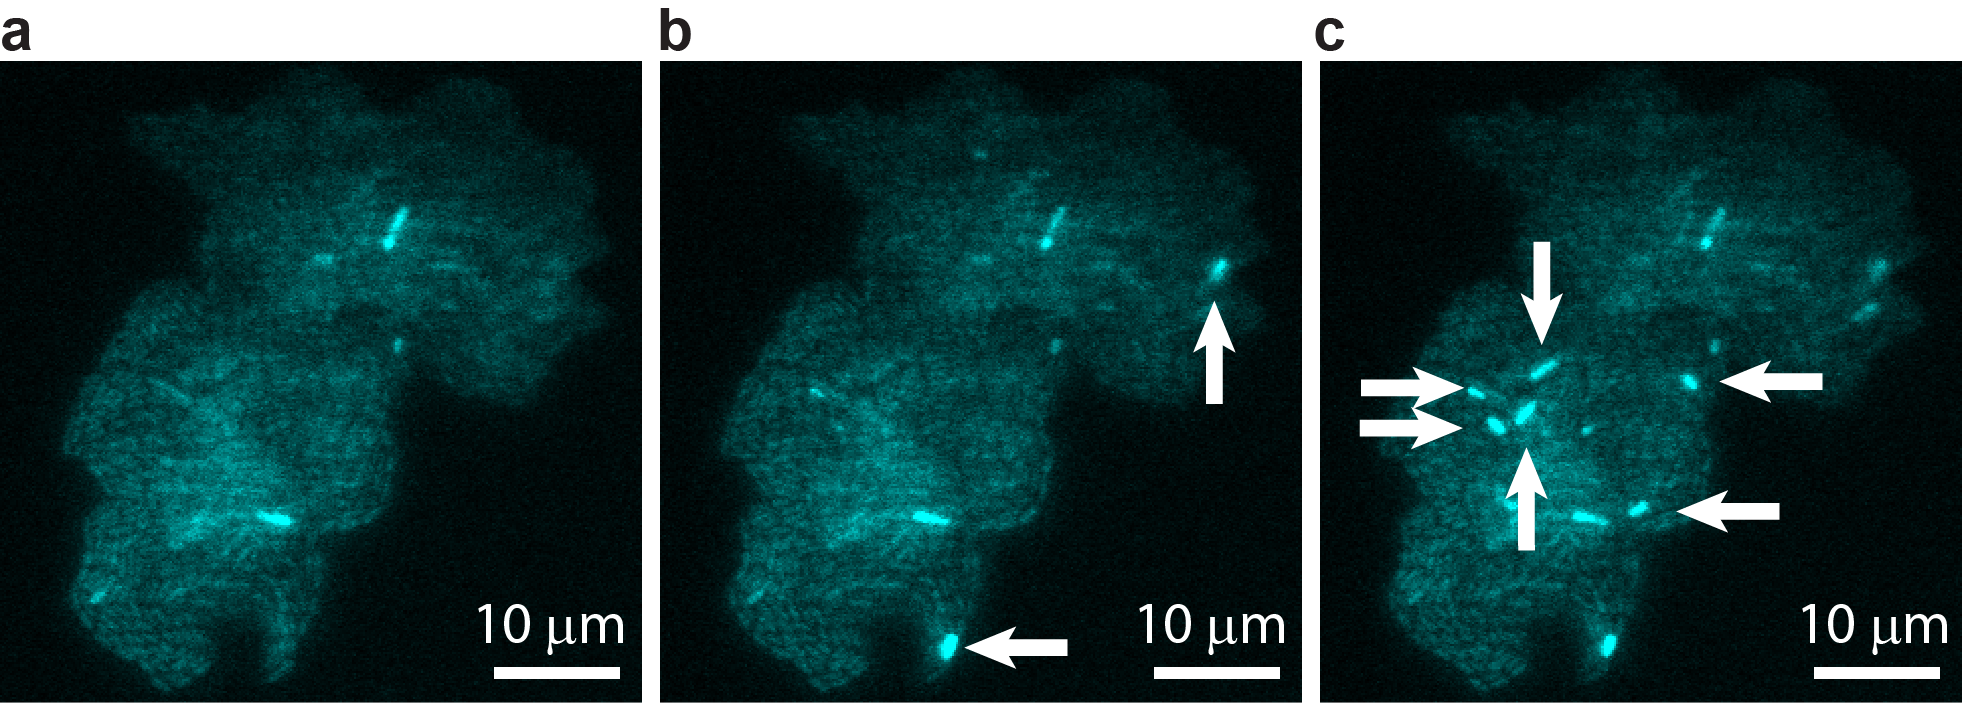 A bacterial colony showing individual cells undergoing transposable element events, resulting in blue fluorescence. Images are shown at (a) t = 0, (b) t = 40 min, and (c) t = 60 min, with arrows indicating newly occurring events in each image. Image courtesy of T.E. Kuhlman, University of Illinois at Urbana-Champaign, reproduced with permission from Proceedings of the National Academy of Sciences USA. Image credit: None